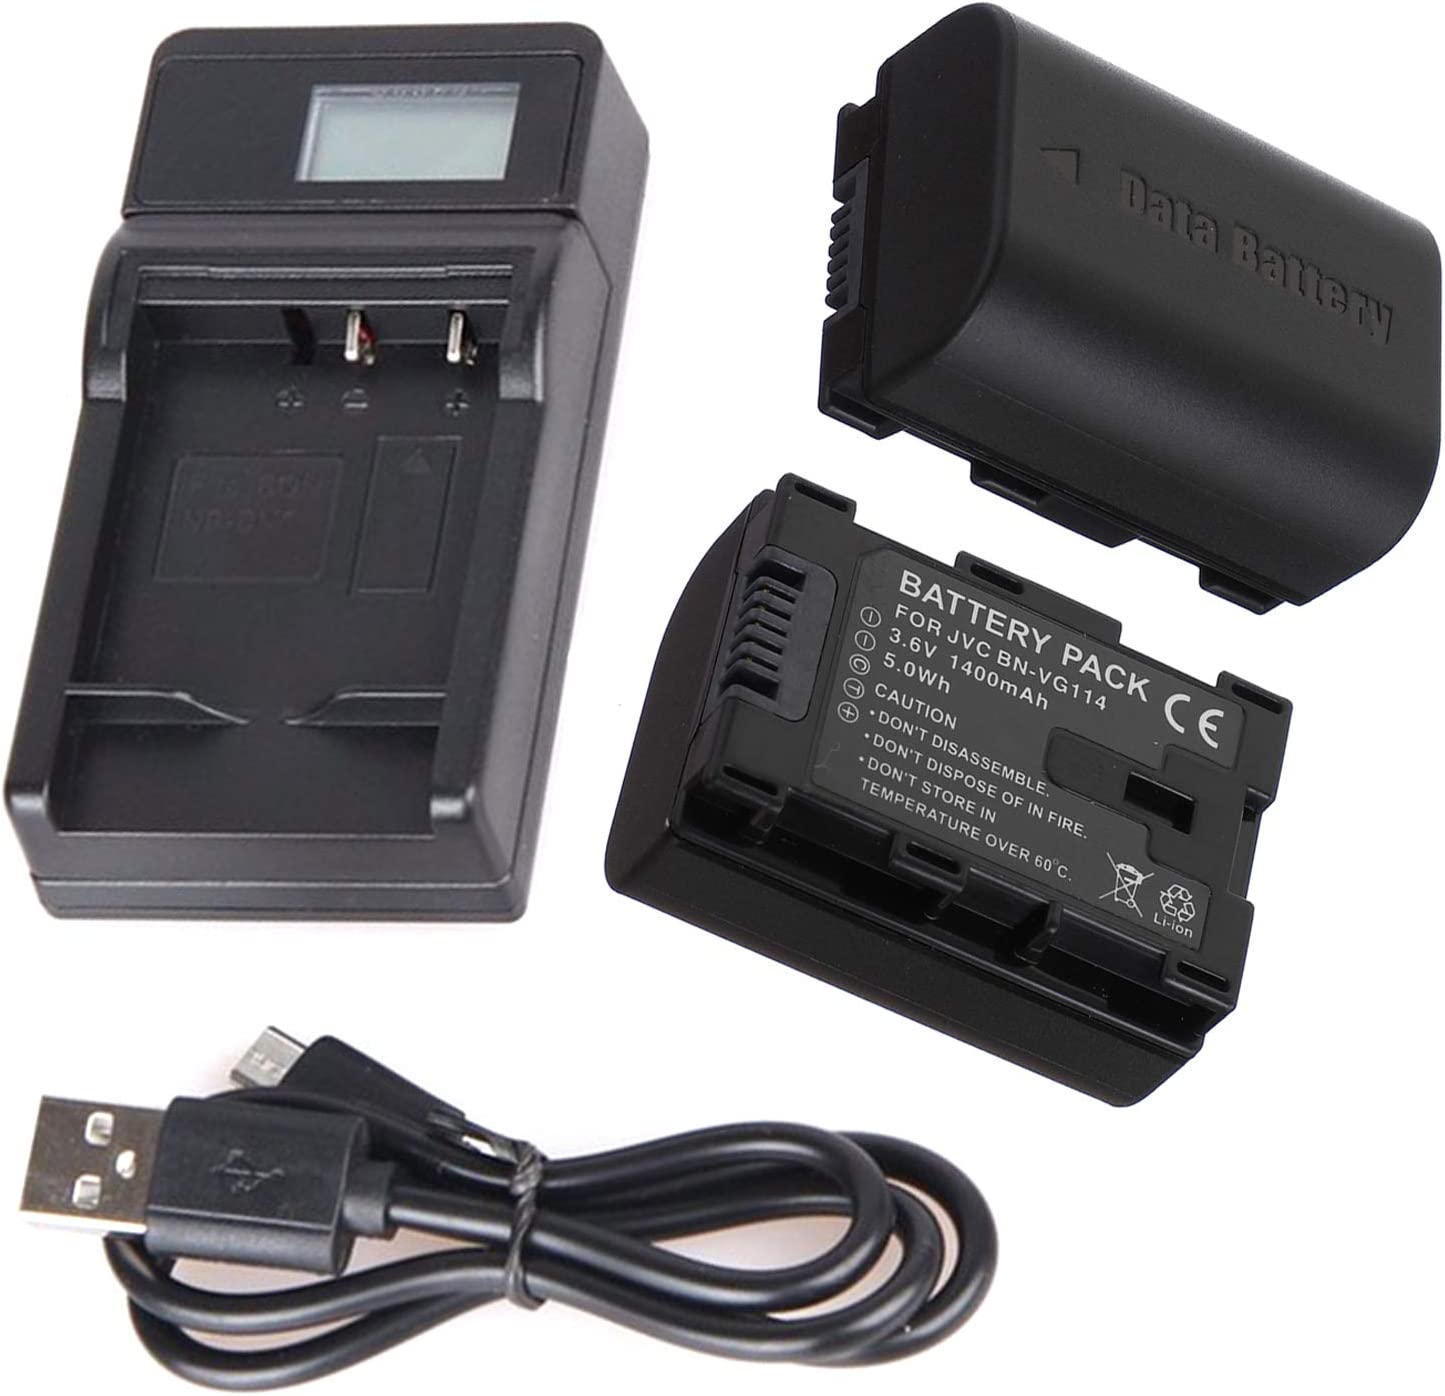 LCD USB Battery Charger for JVC Everio GZ-HM30SU GZ-HM30VU GZ-HM30RUS GZ-HM30RU GZ-HM30VUS HD Everio Flash Memory Camcorder GZ-HM30SUS